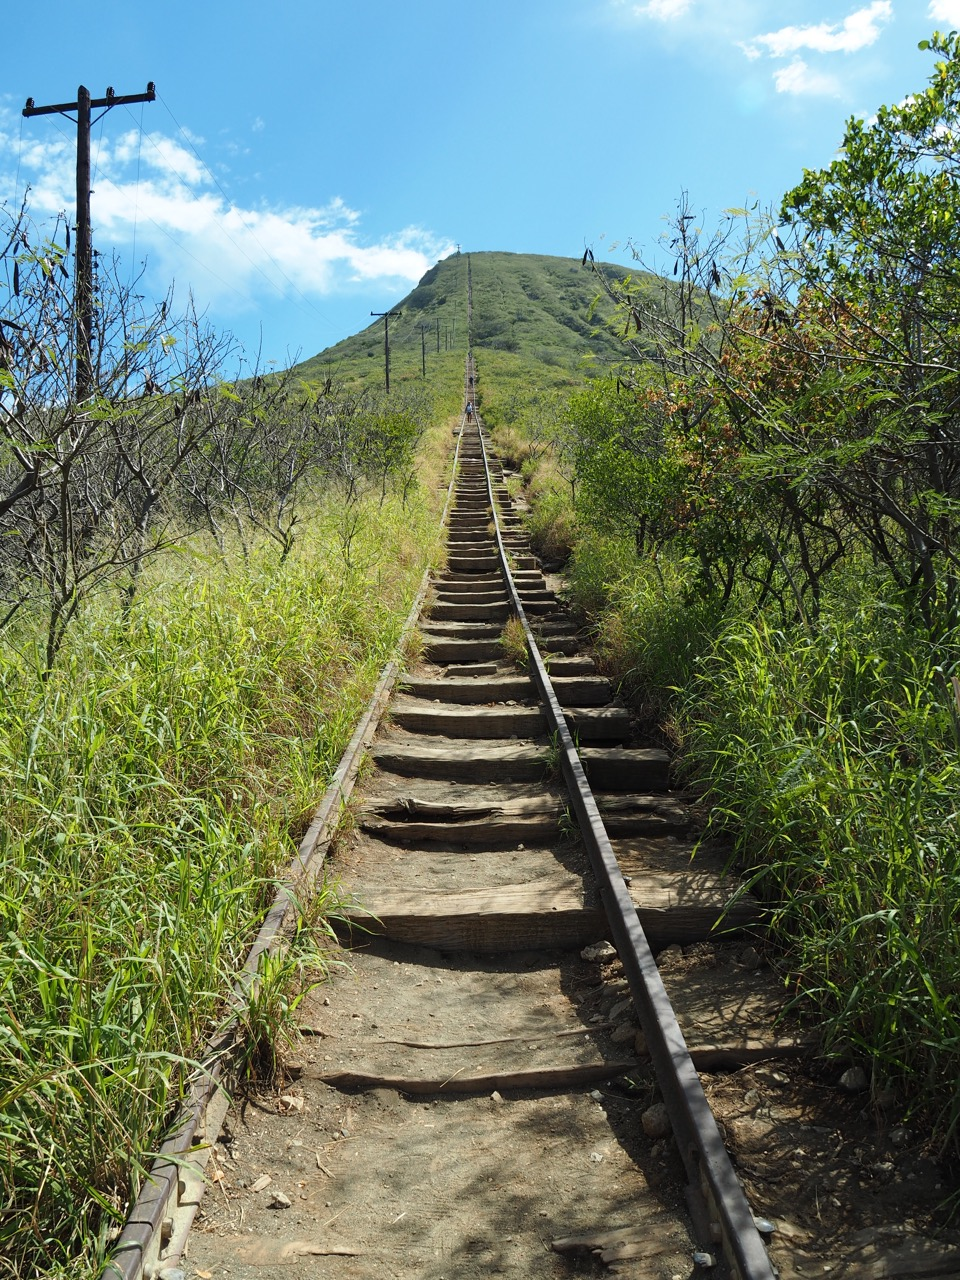 The many steps of the Koko Head Crater trail.